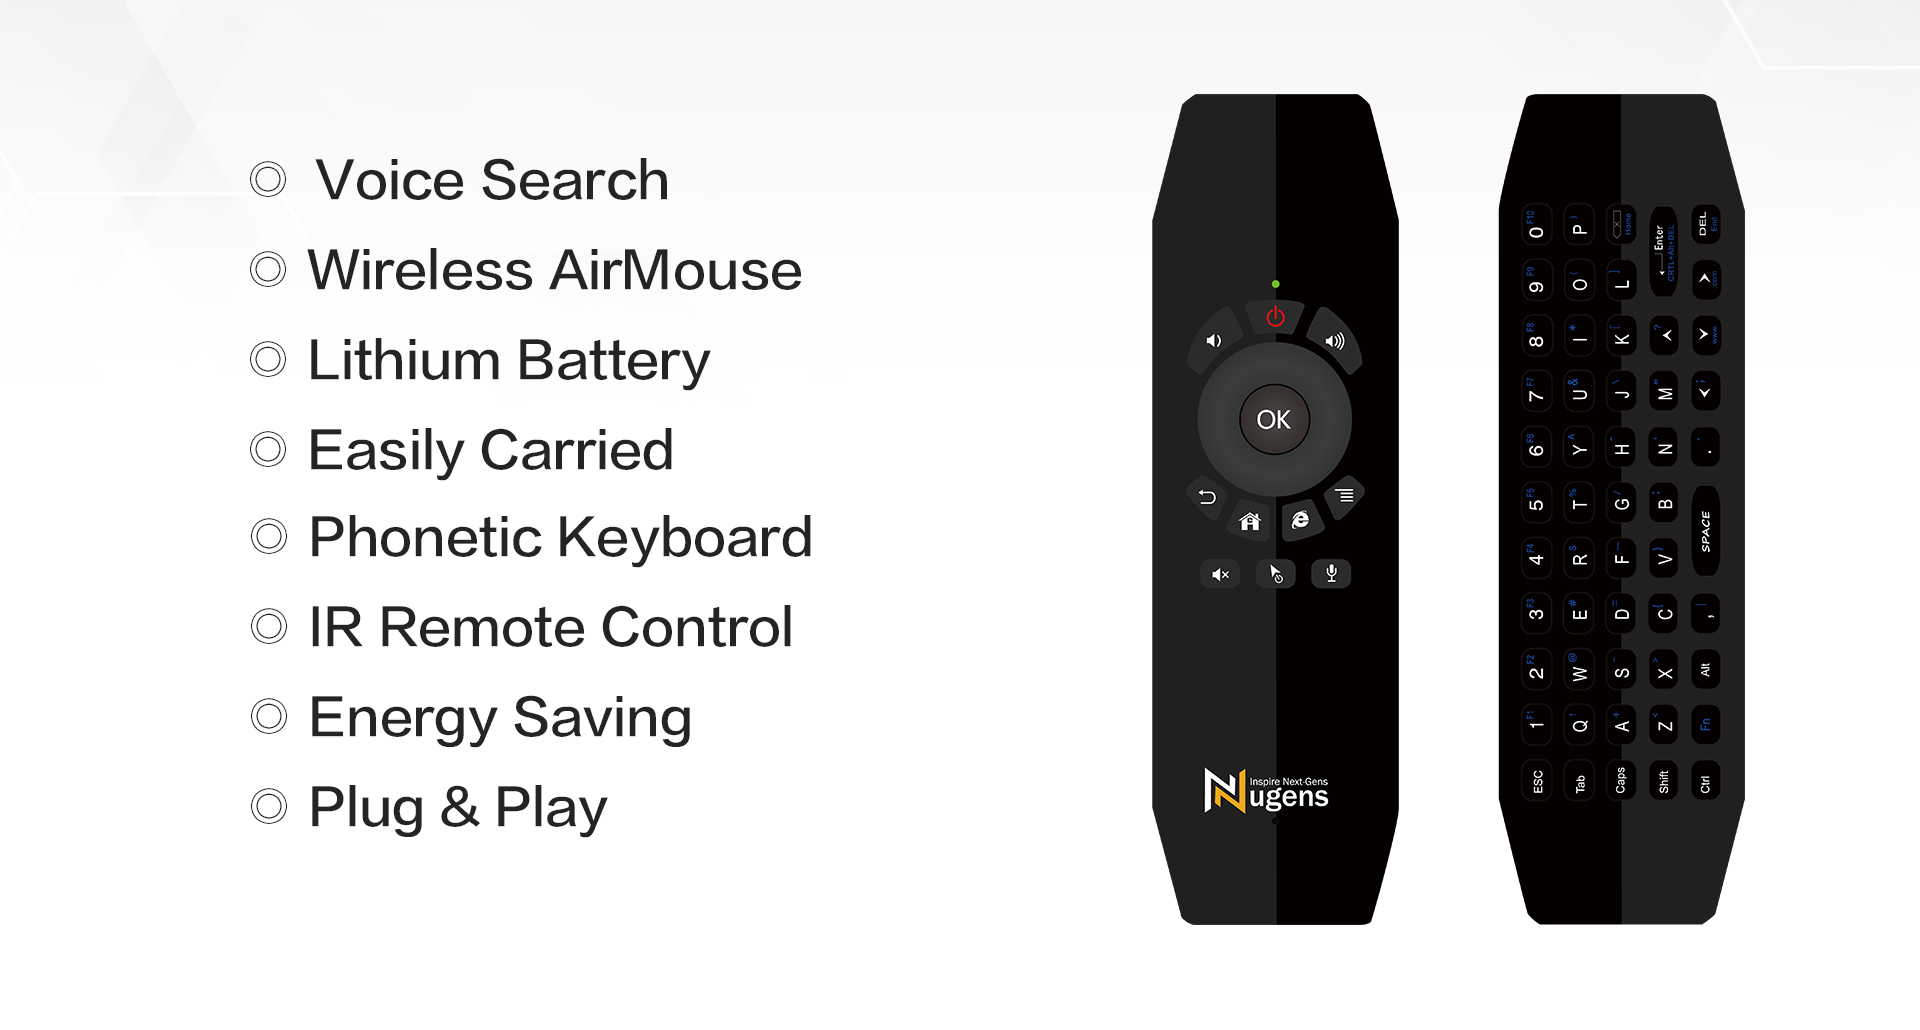 Voice Search,Wireless AirMouse,Lithium Battery,Easily Carried,IR Remote Control,Energy Saving,Plug & Play